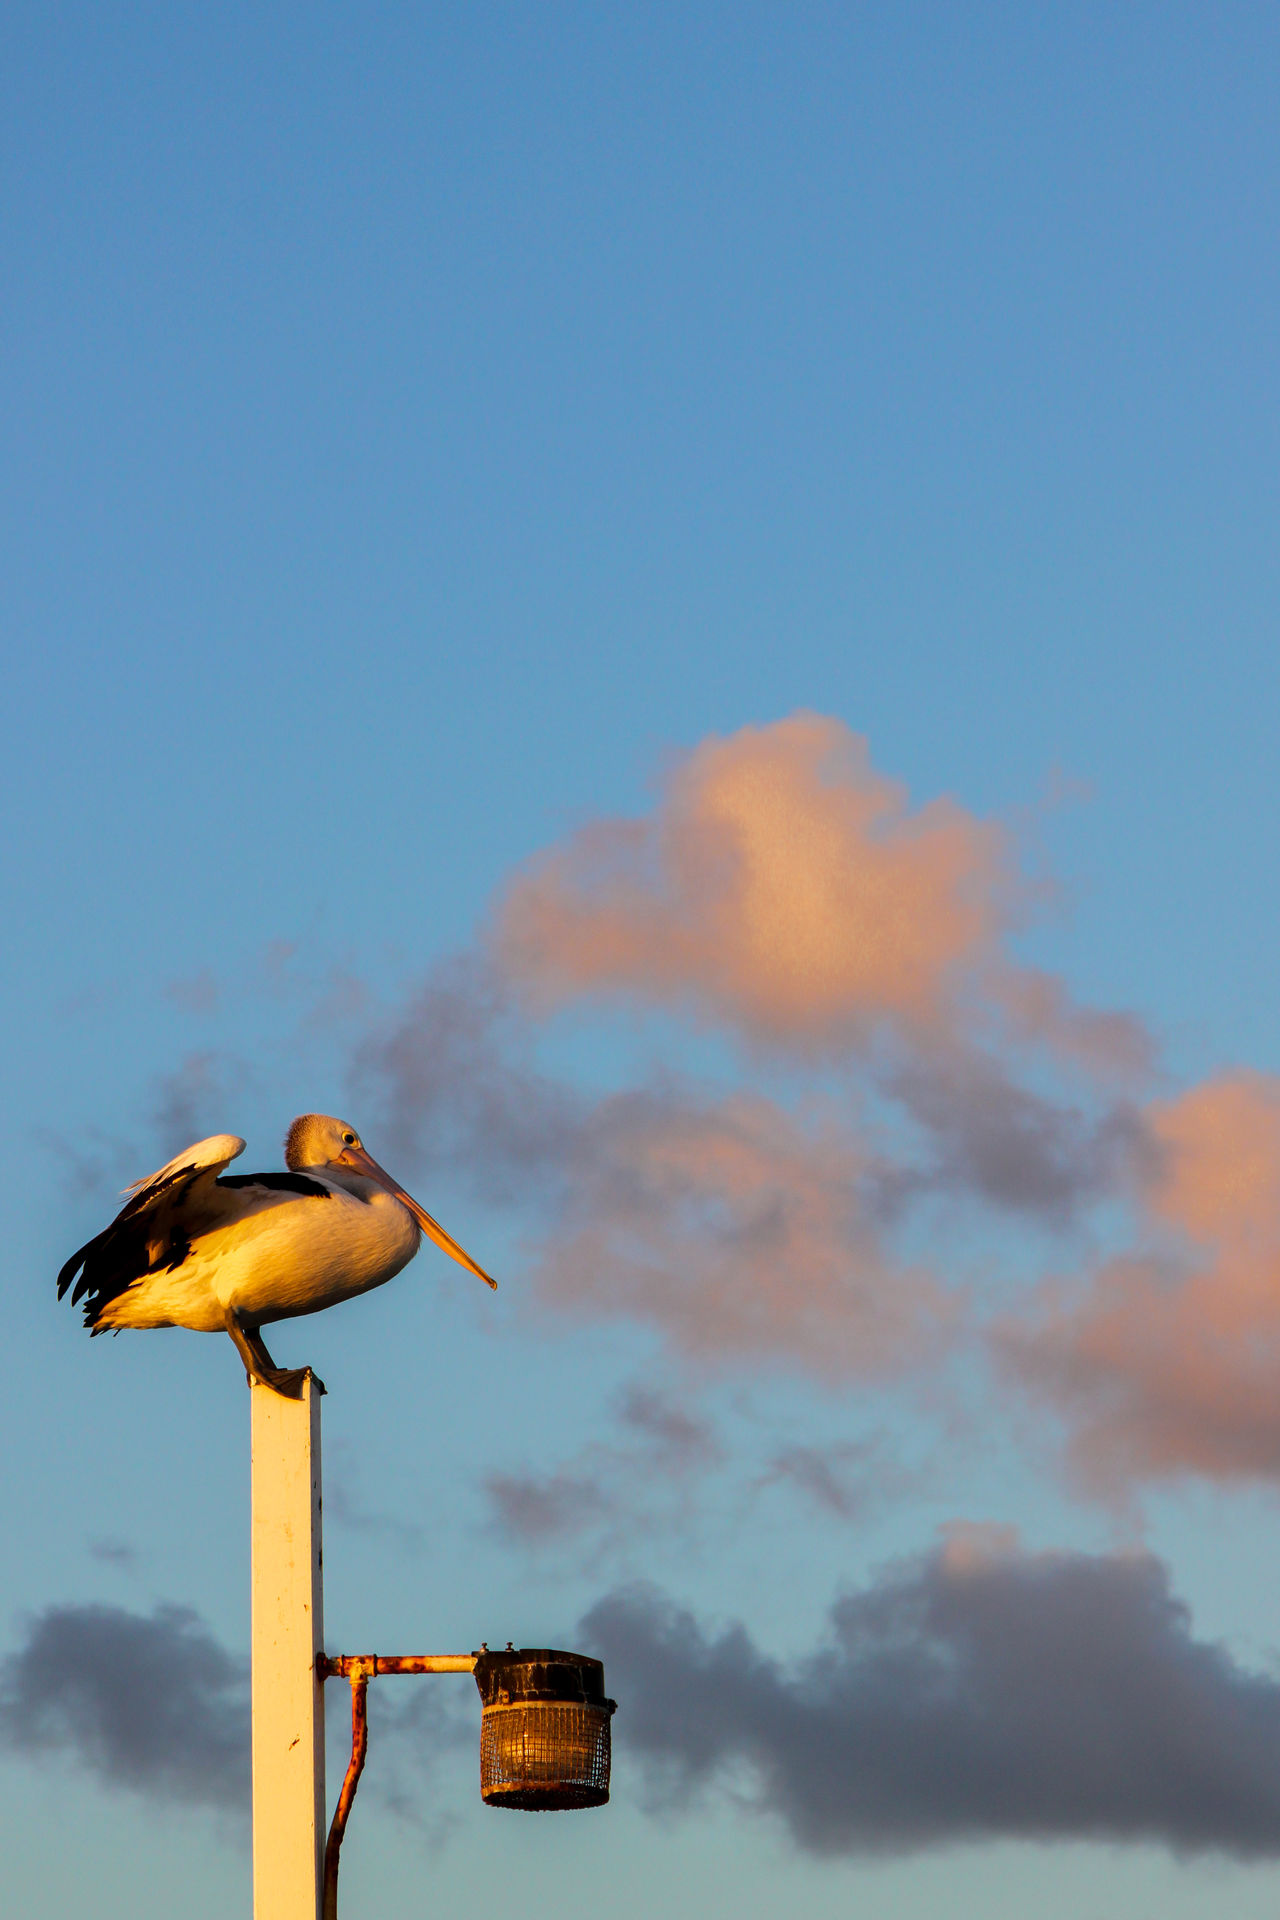 A pelican perches on a pole Animal Themes Animal Wildlife Animals In The Wild Beauty In Nature Bird Blue Clear Sky Close-up Day Low Angle View Nature No People One Animal Outdoors Pelican Perching Sky Wooden Post